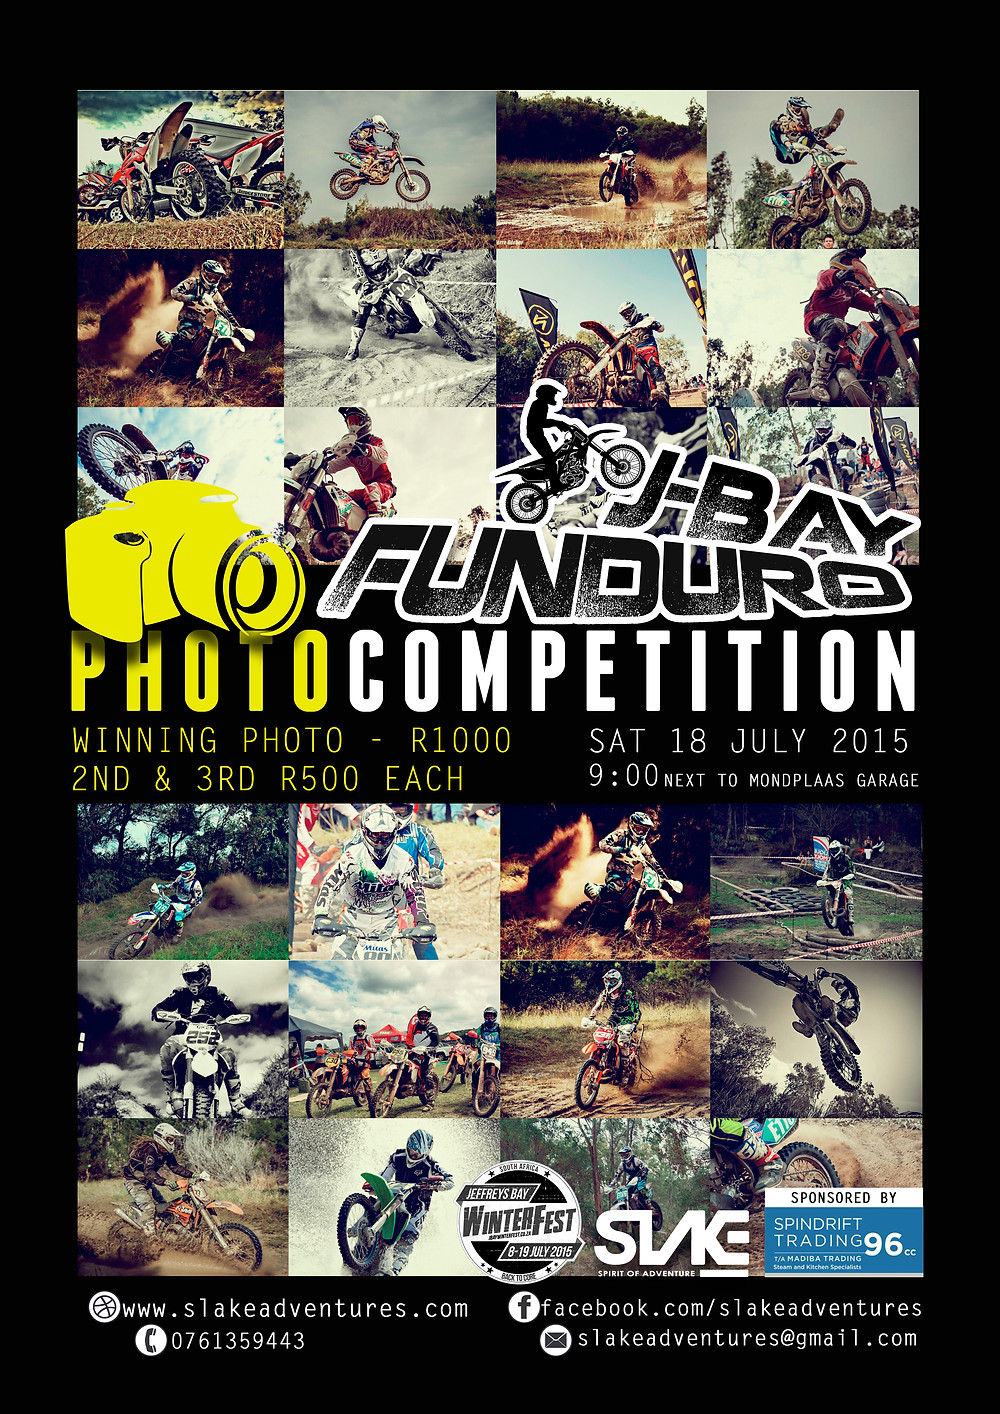 photo comp poster_2.jpg